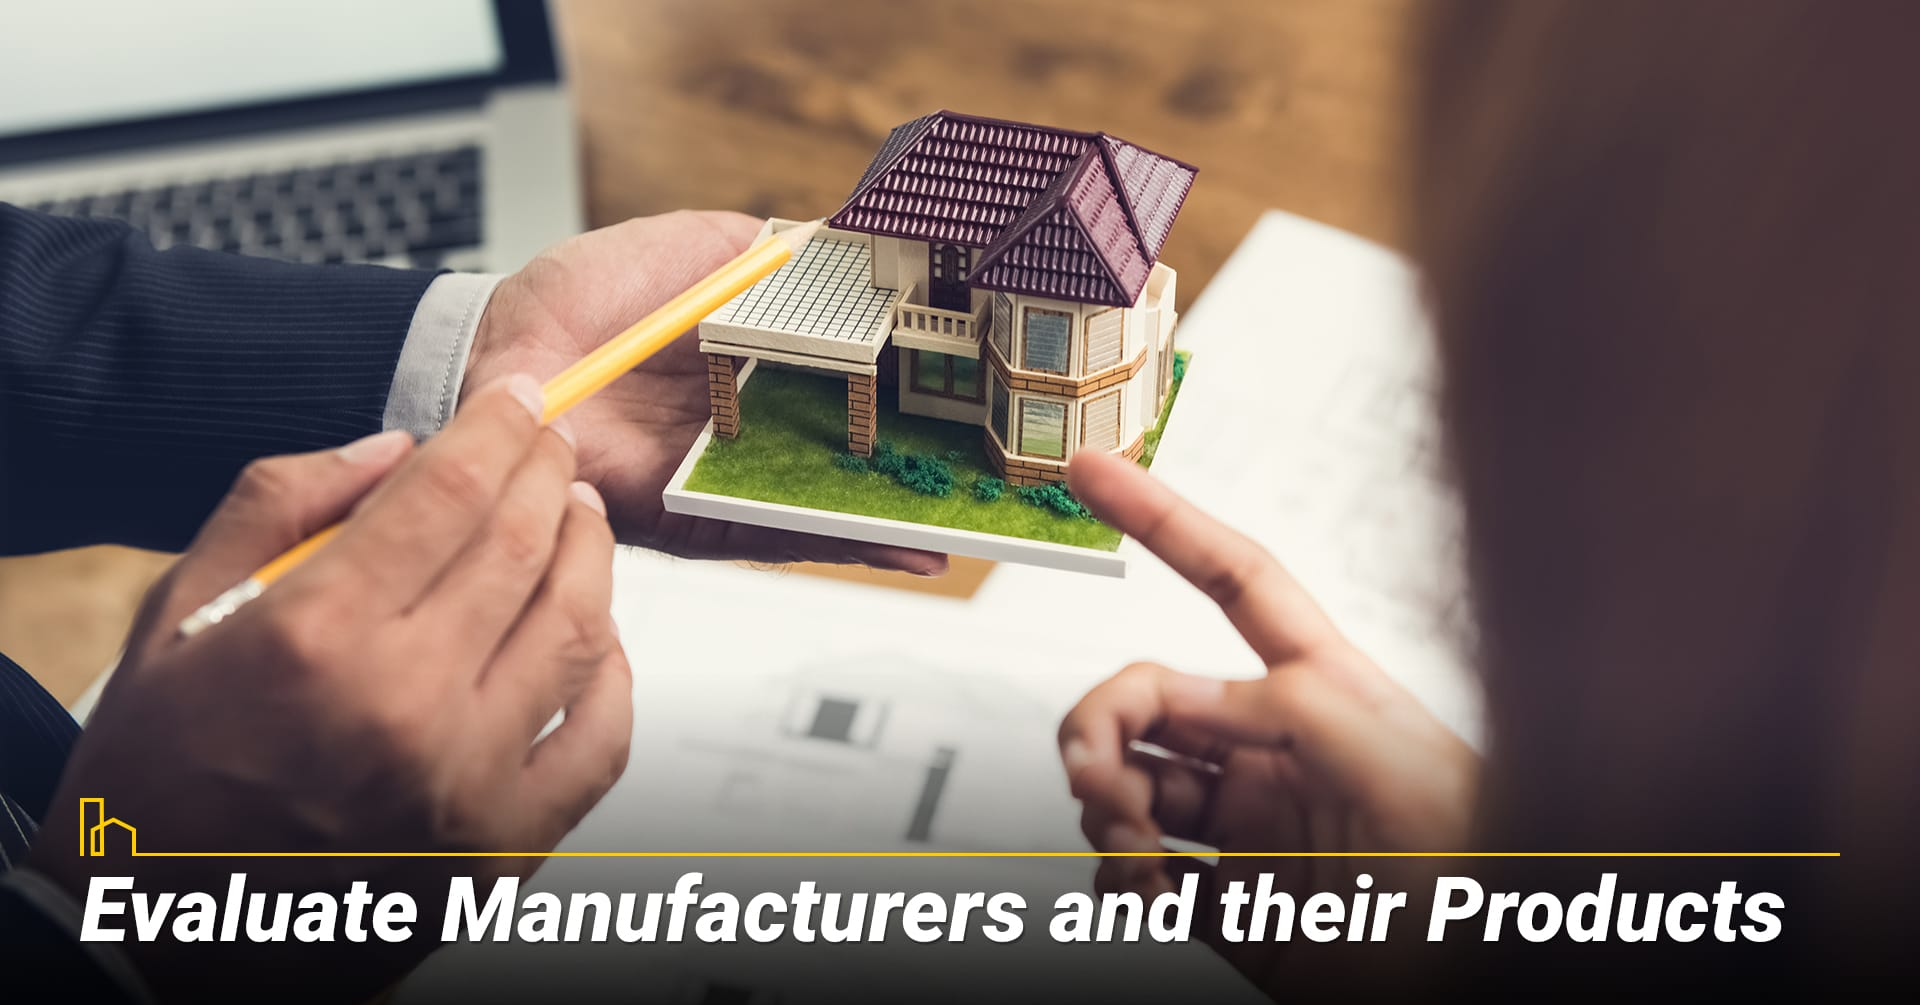 Evaluate Manufacturers and their Products, do your own evaluation